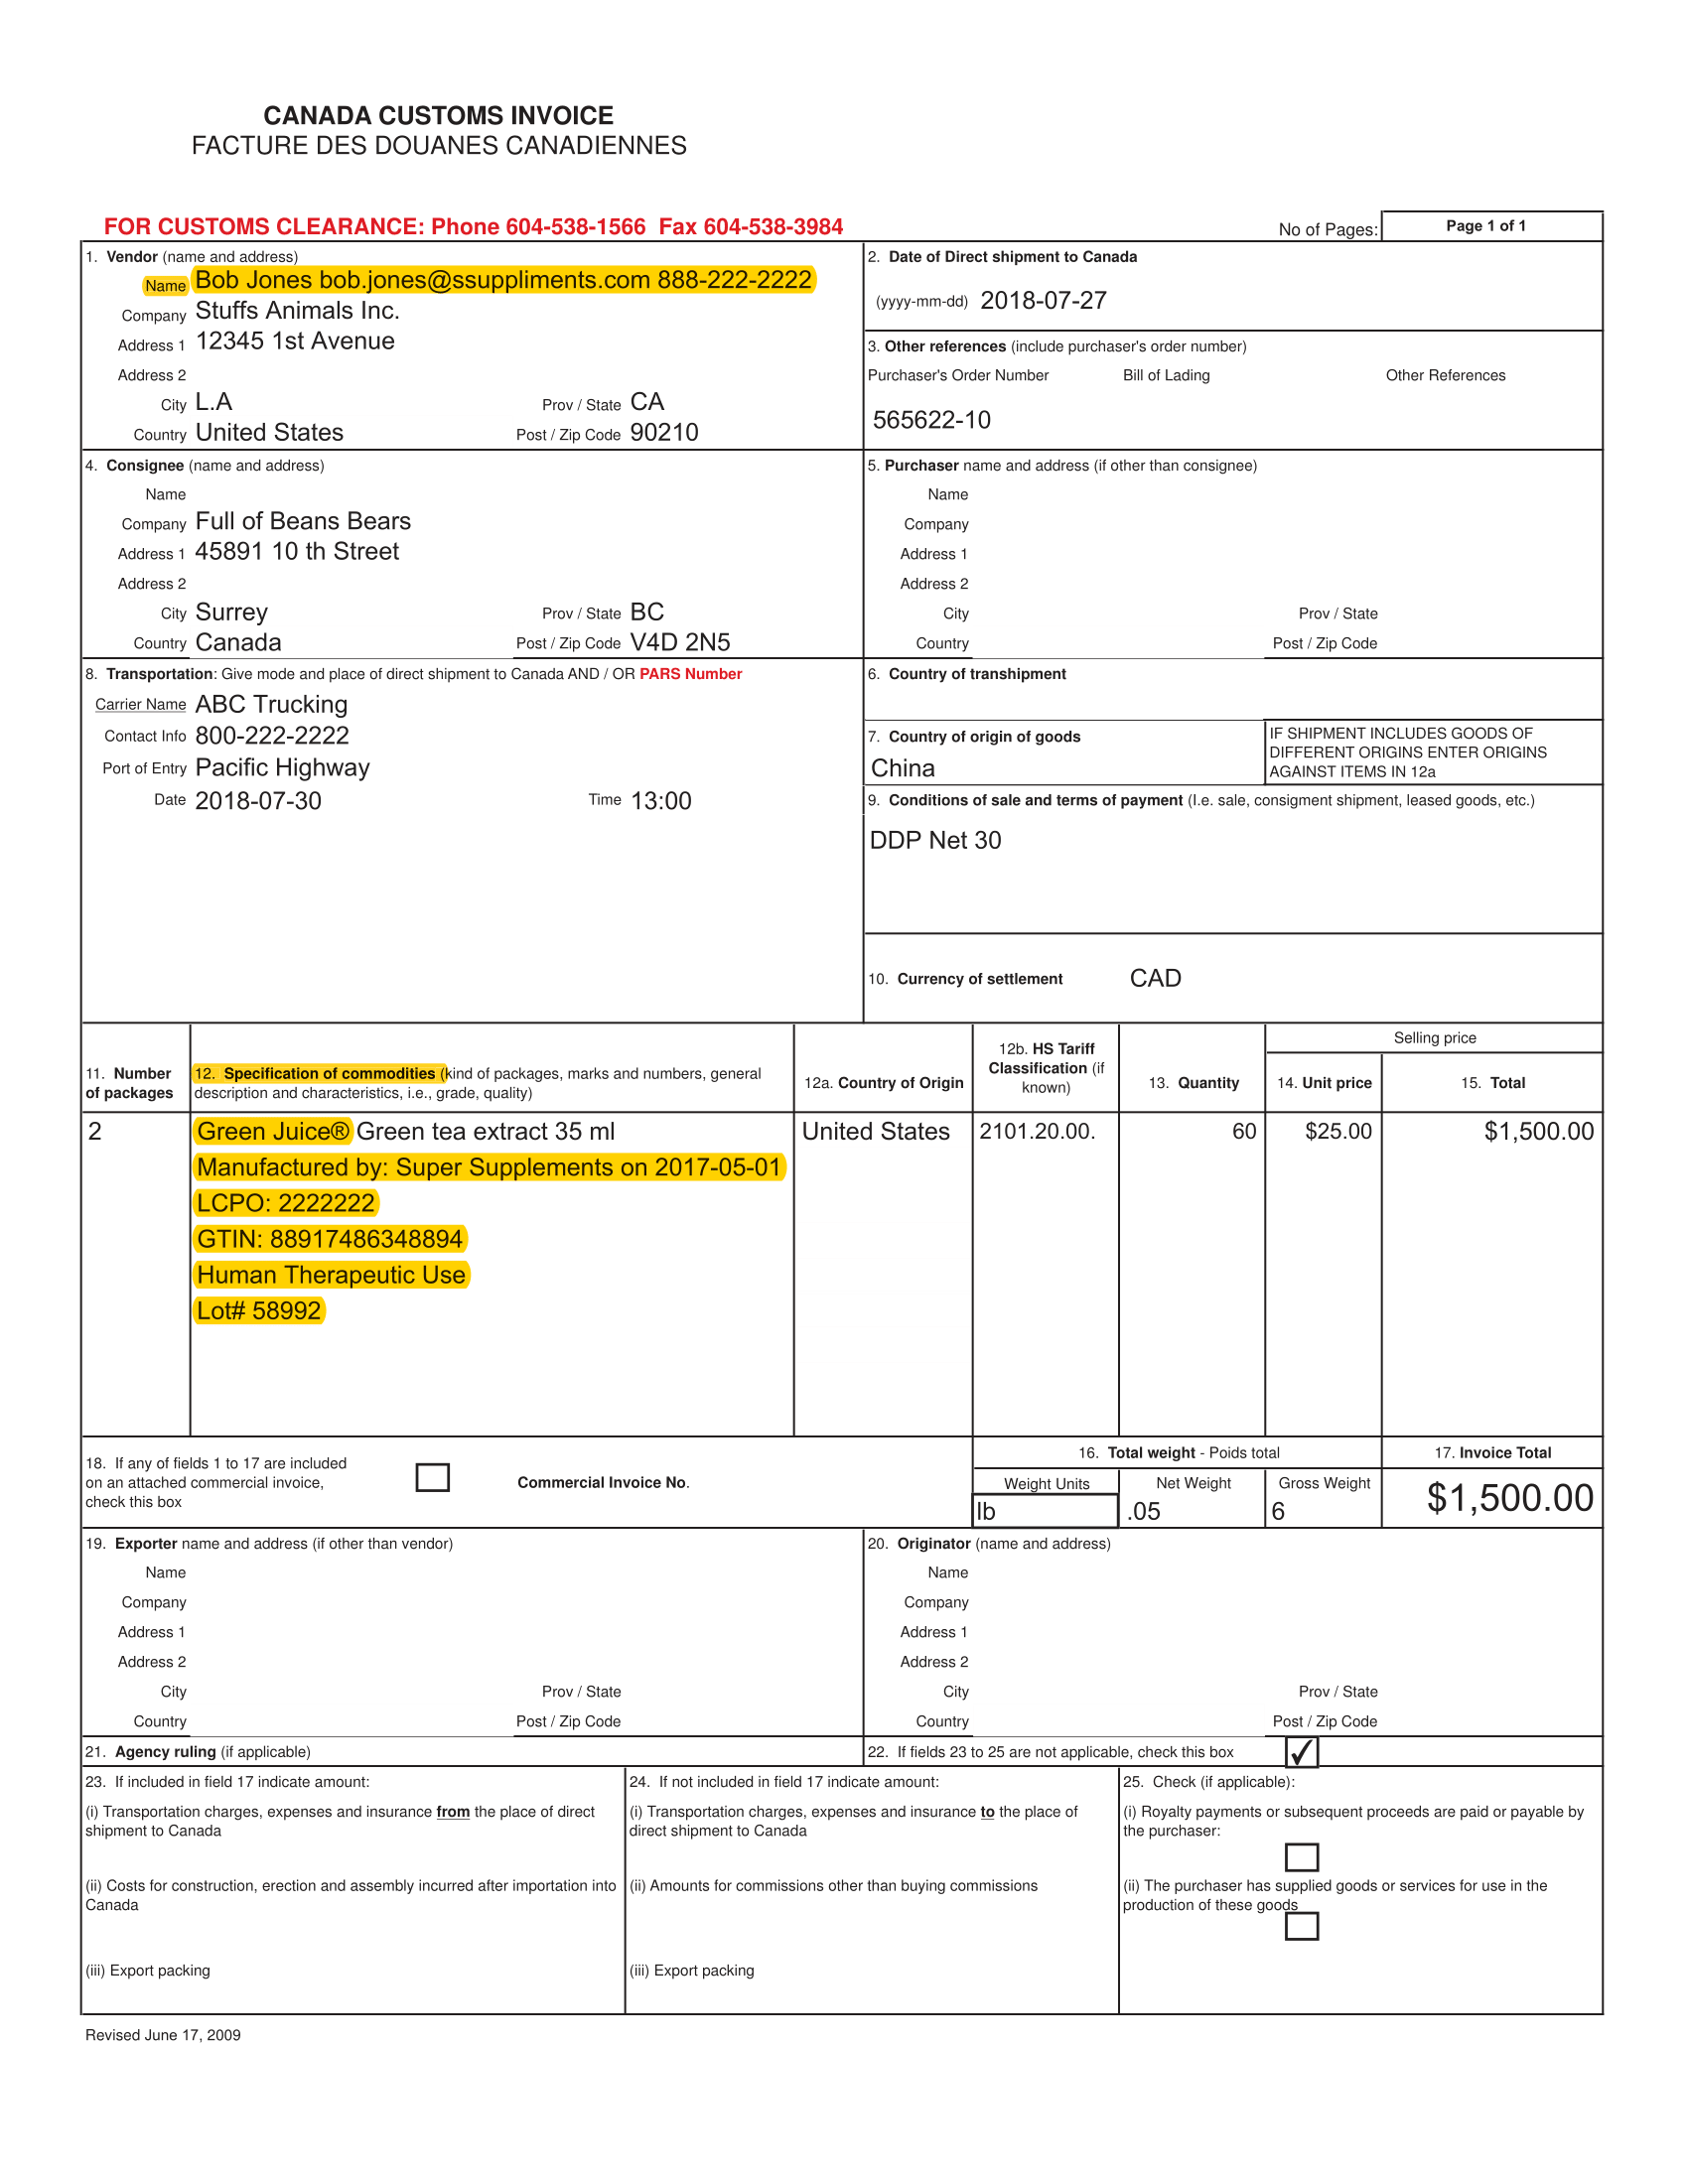 Canada Customs Invoice Example 2